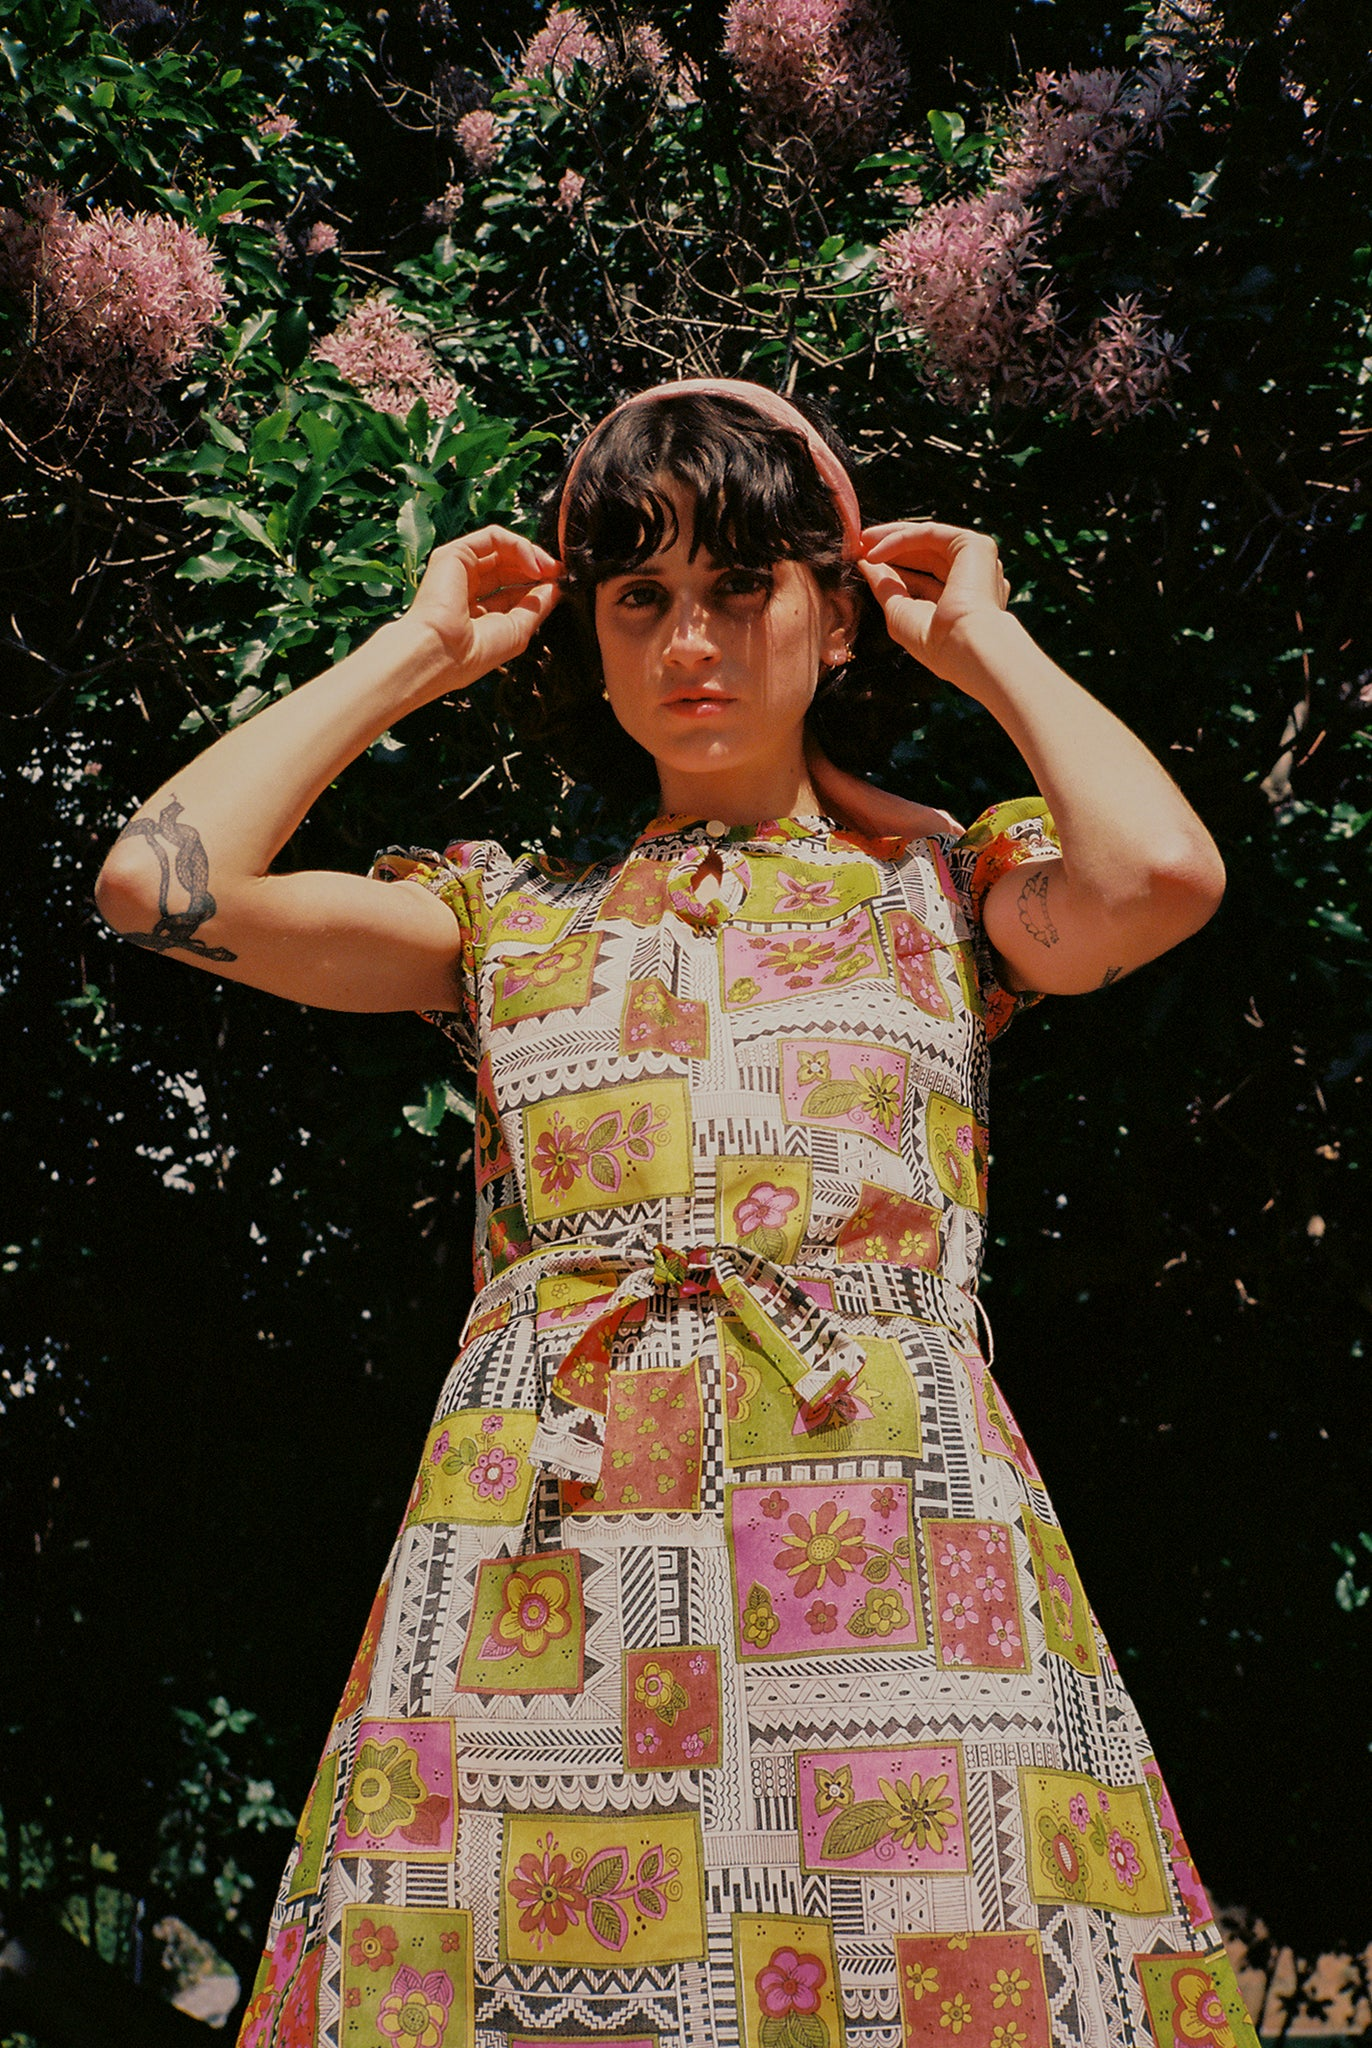 vintage 1960s 60s psychedelic floral micro mini dress